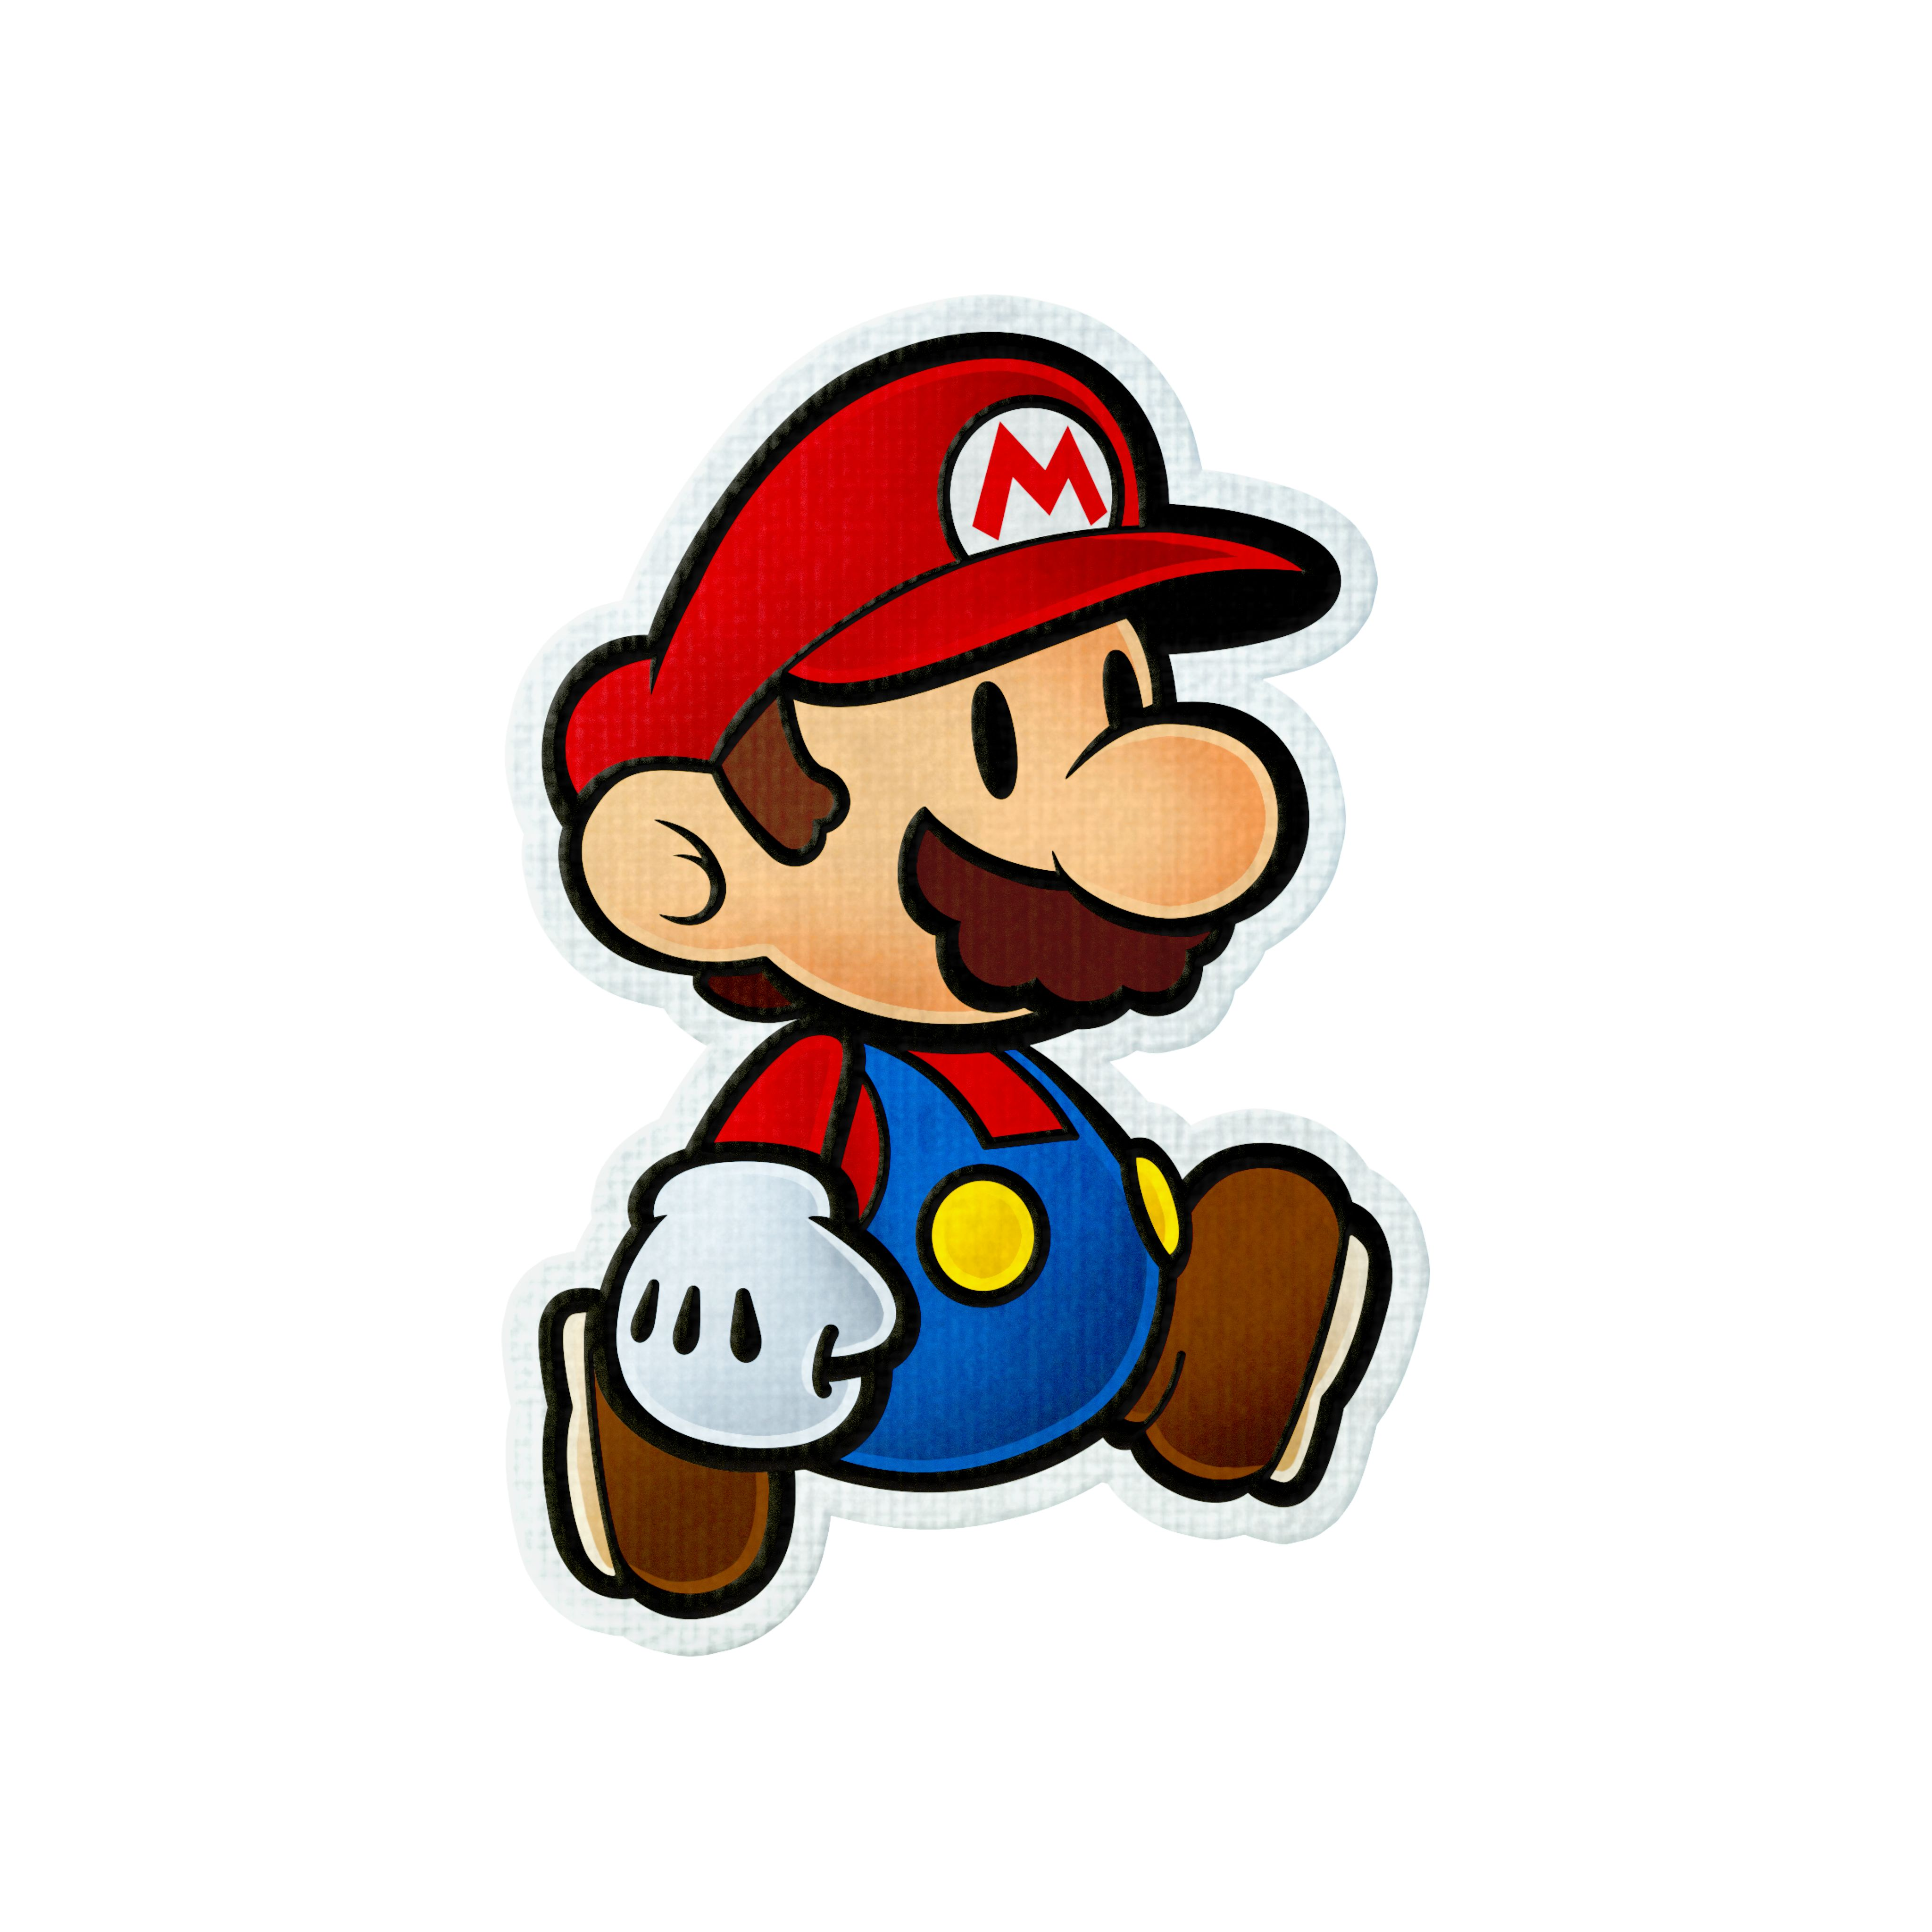 Daily briefs oct 7 round 2 2ds paper mario color for What color is mario